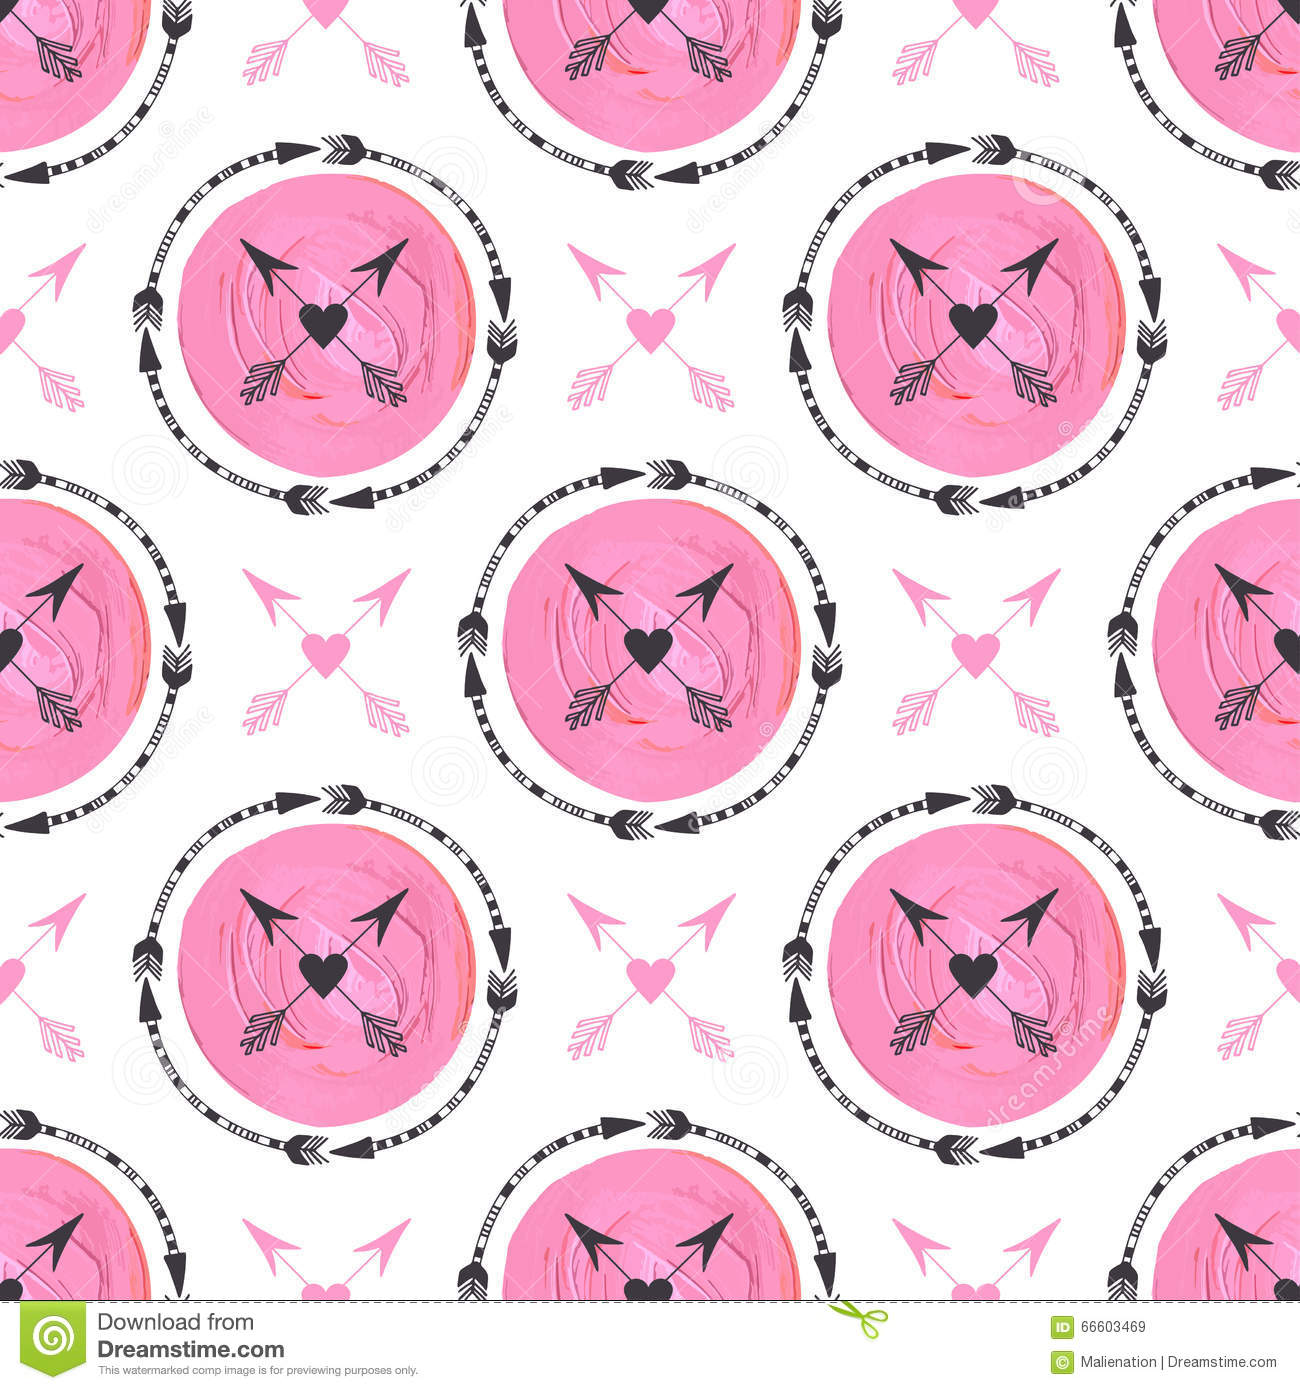 Tribal arrow clipart circle vector free Fashion Background With Arrows And Pink Circles Ornament ... vector free